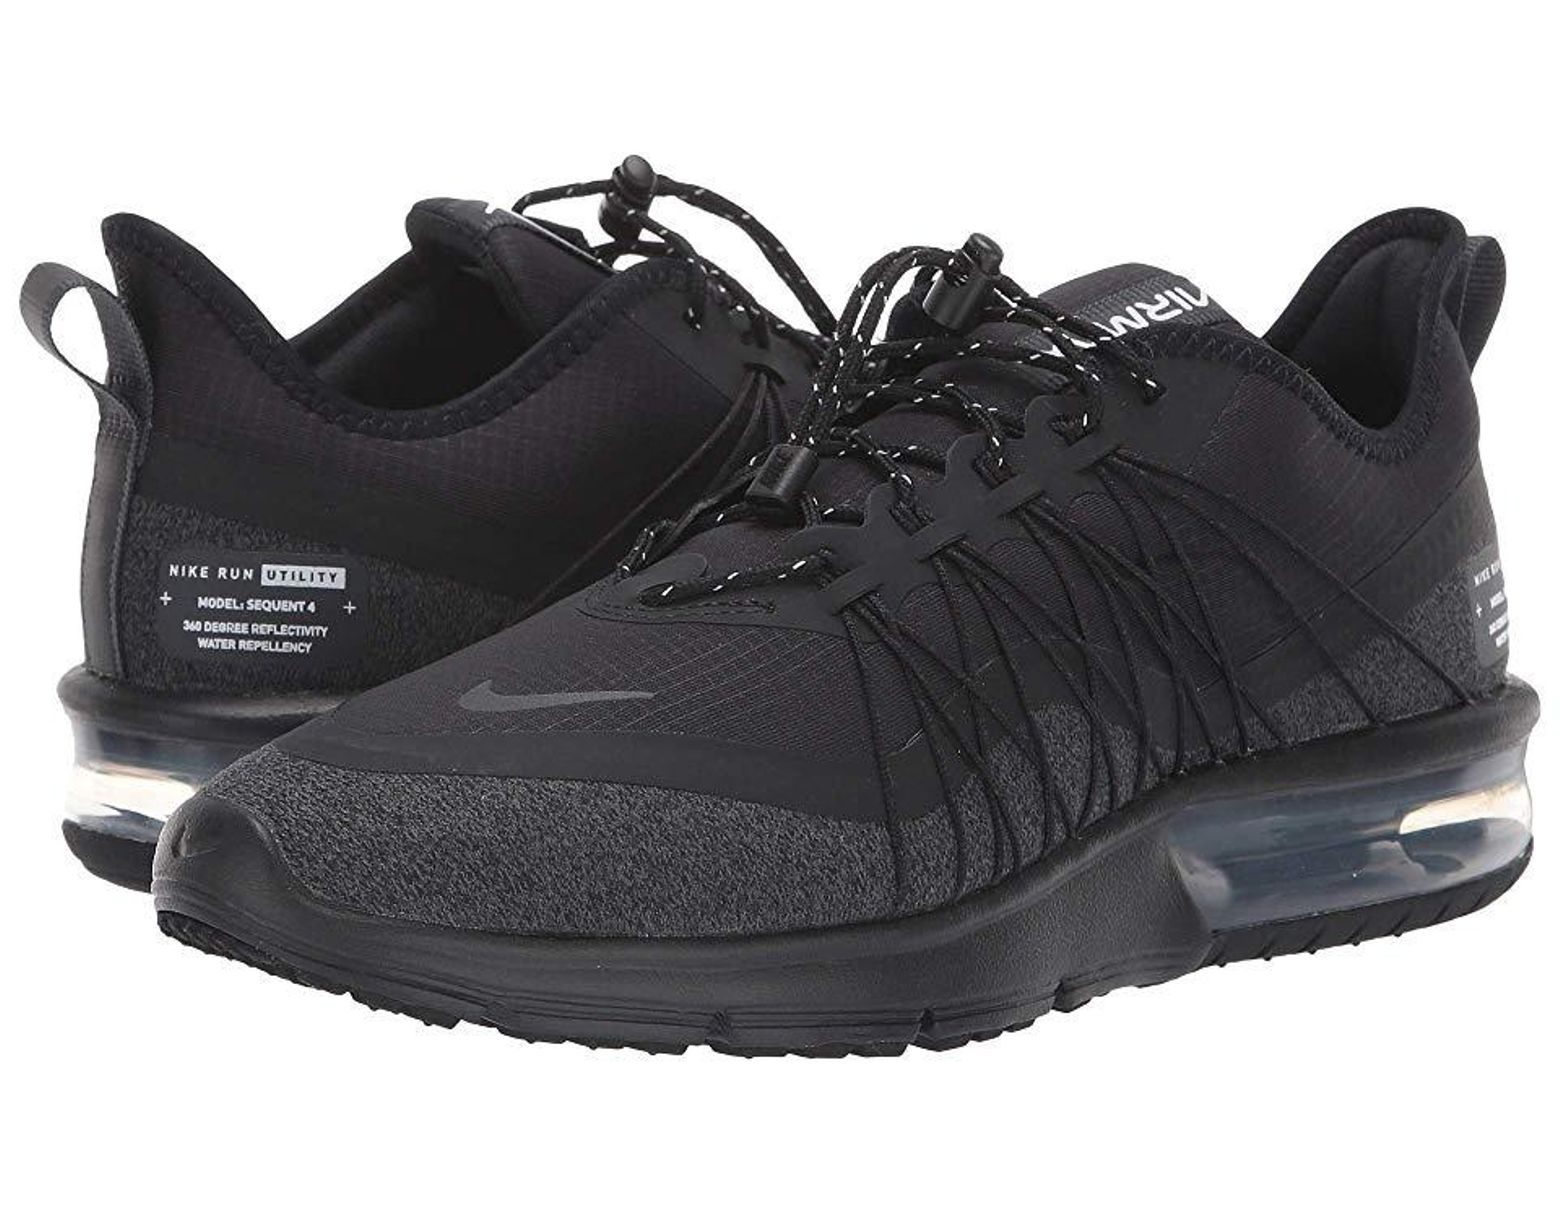 4cada81a6fc Women's Air Max Sequent 4 Shield (black/anthracite/white) Running Shoes